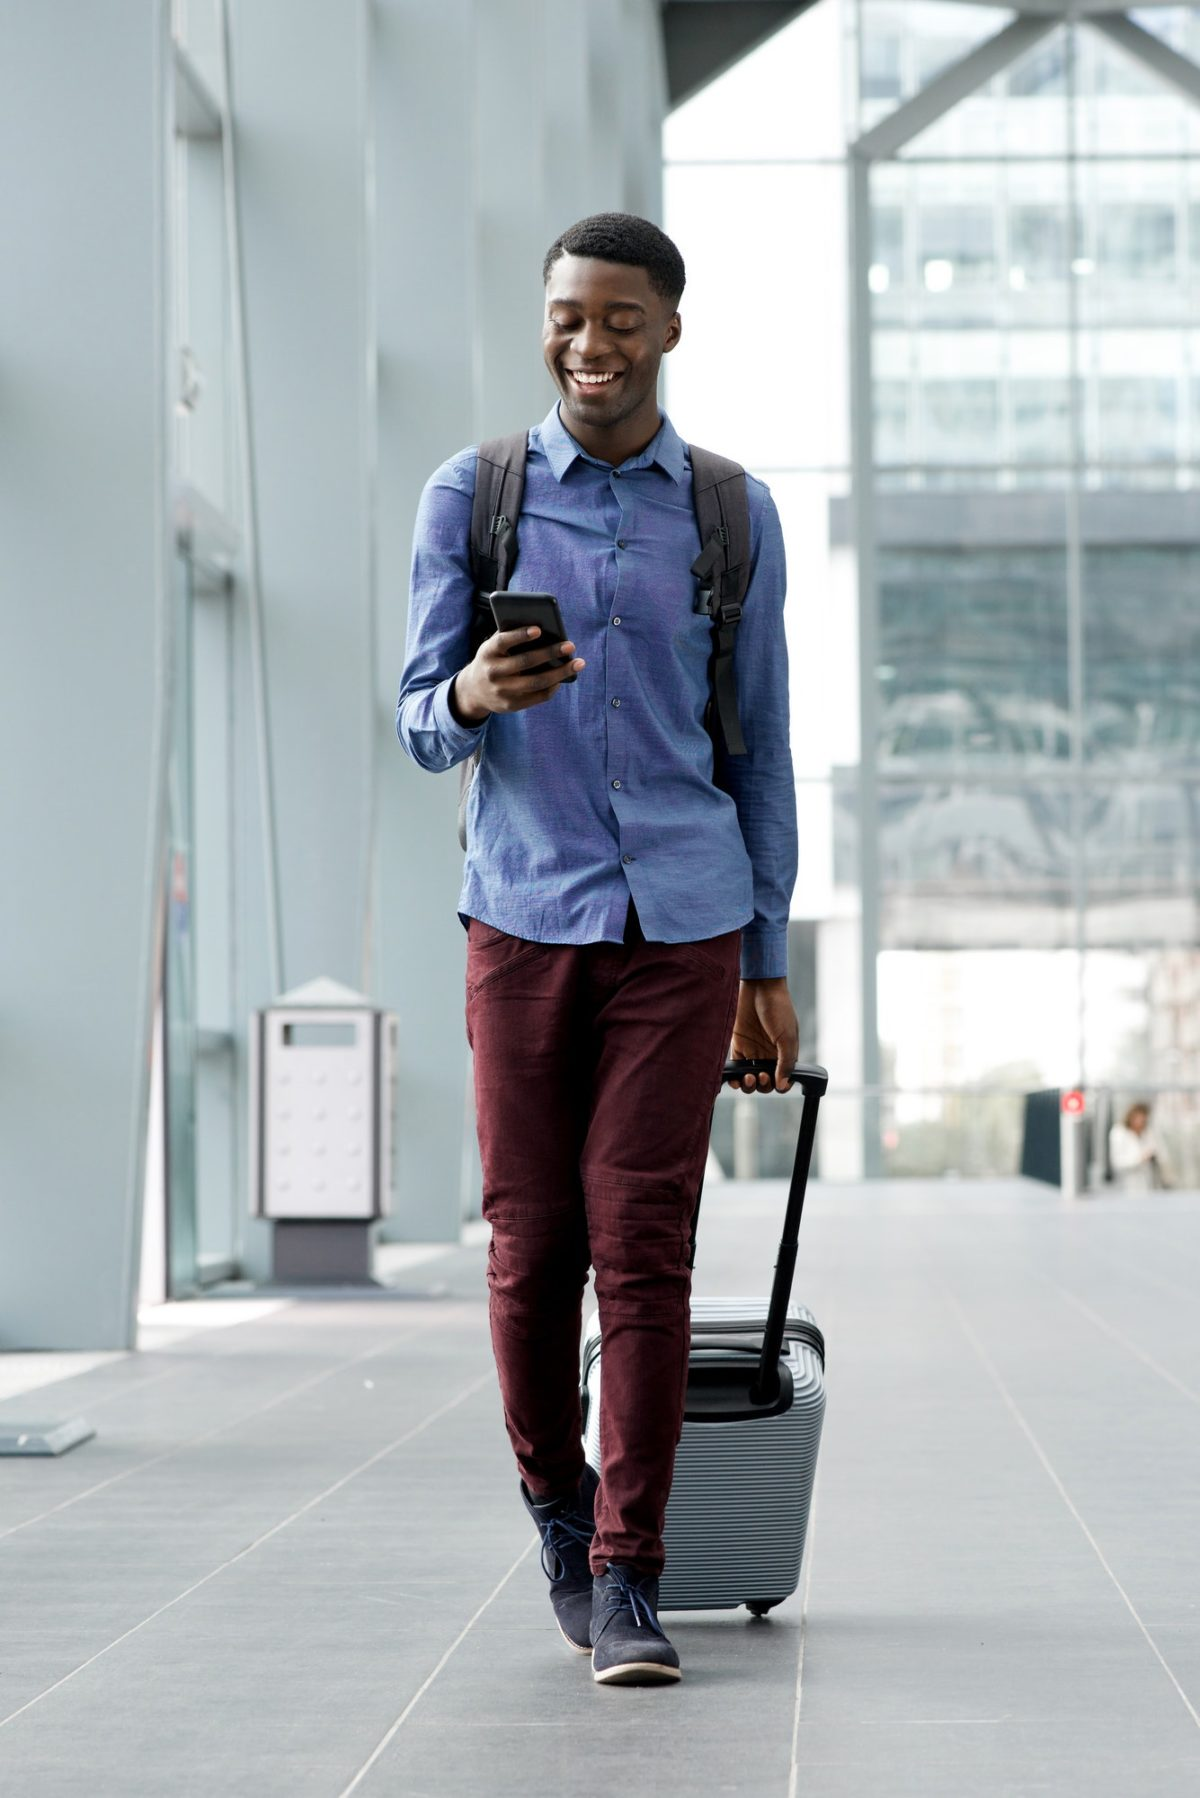 Full body young man traveling with bag and mobile phone at station